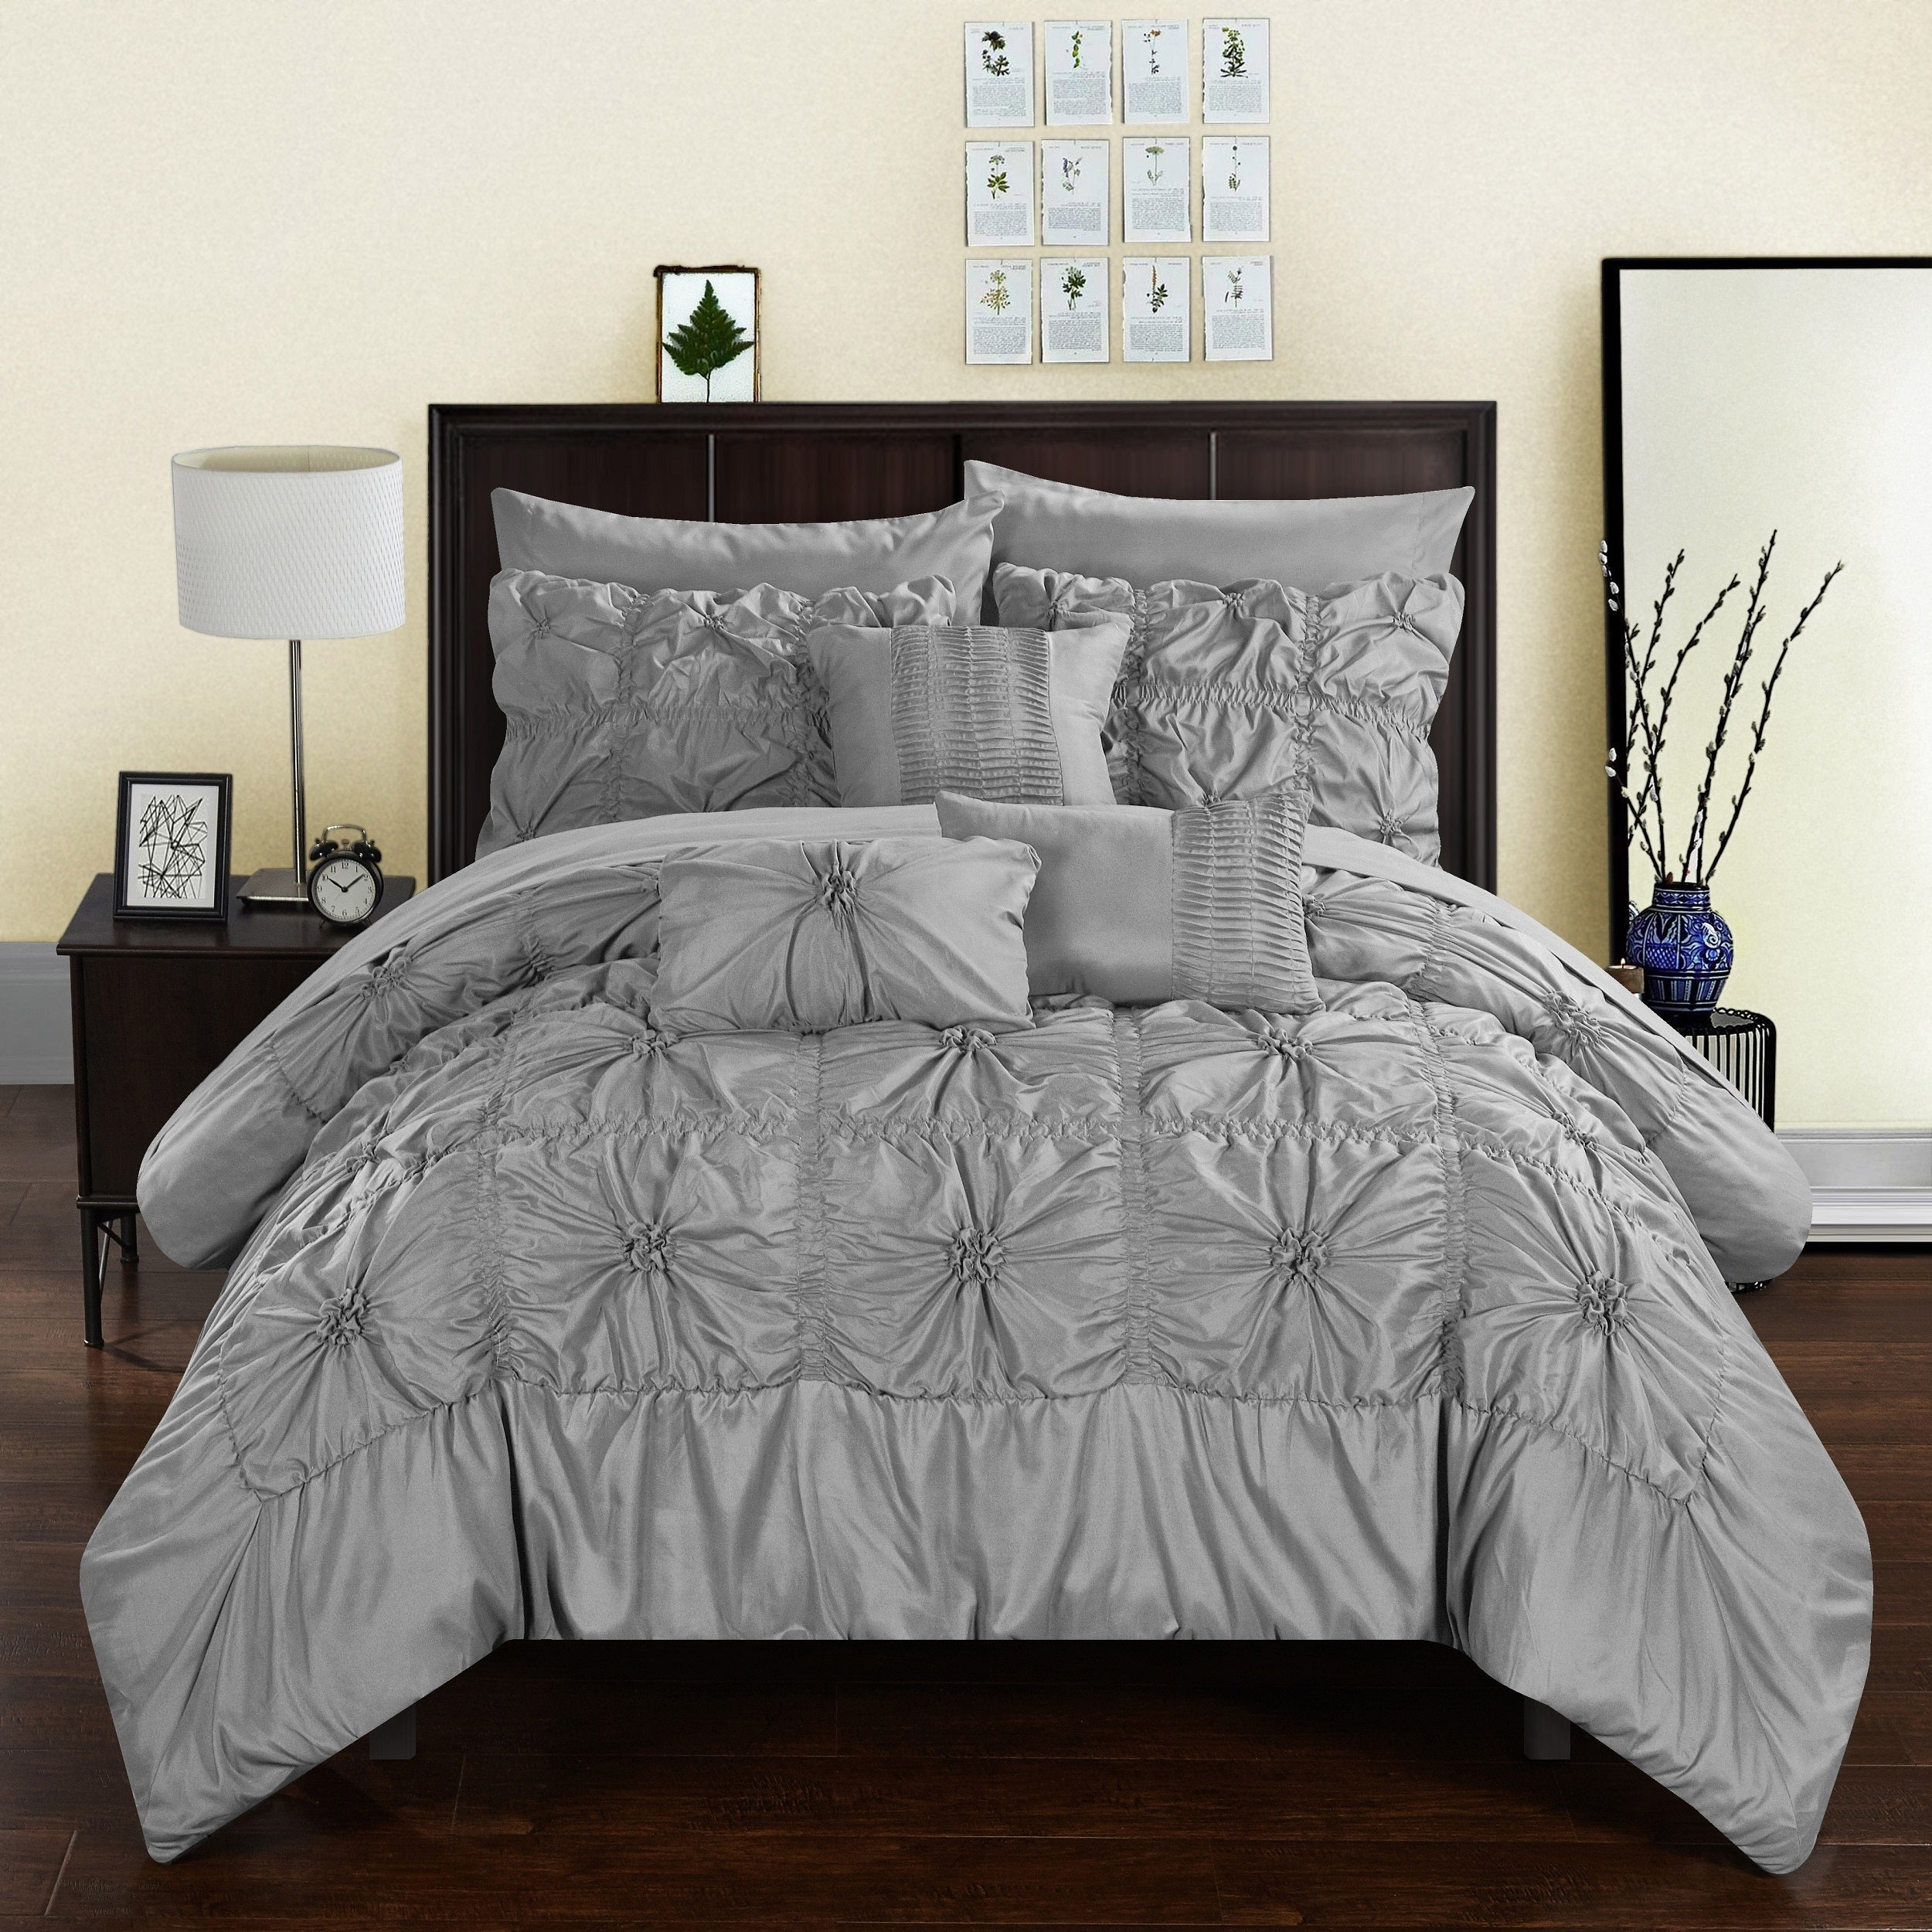 Oliver & James Siah Grey 10-piece Bed in a Bag Comforter Set - Thumbnail 0